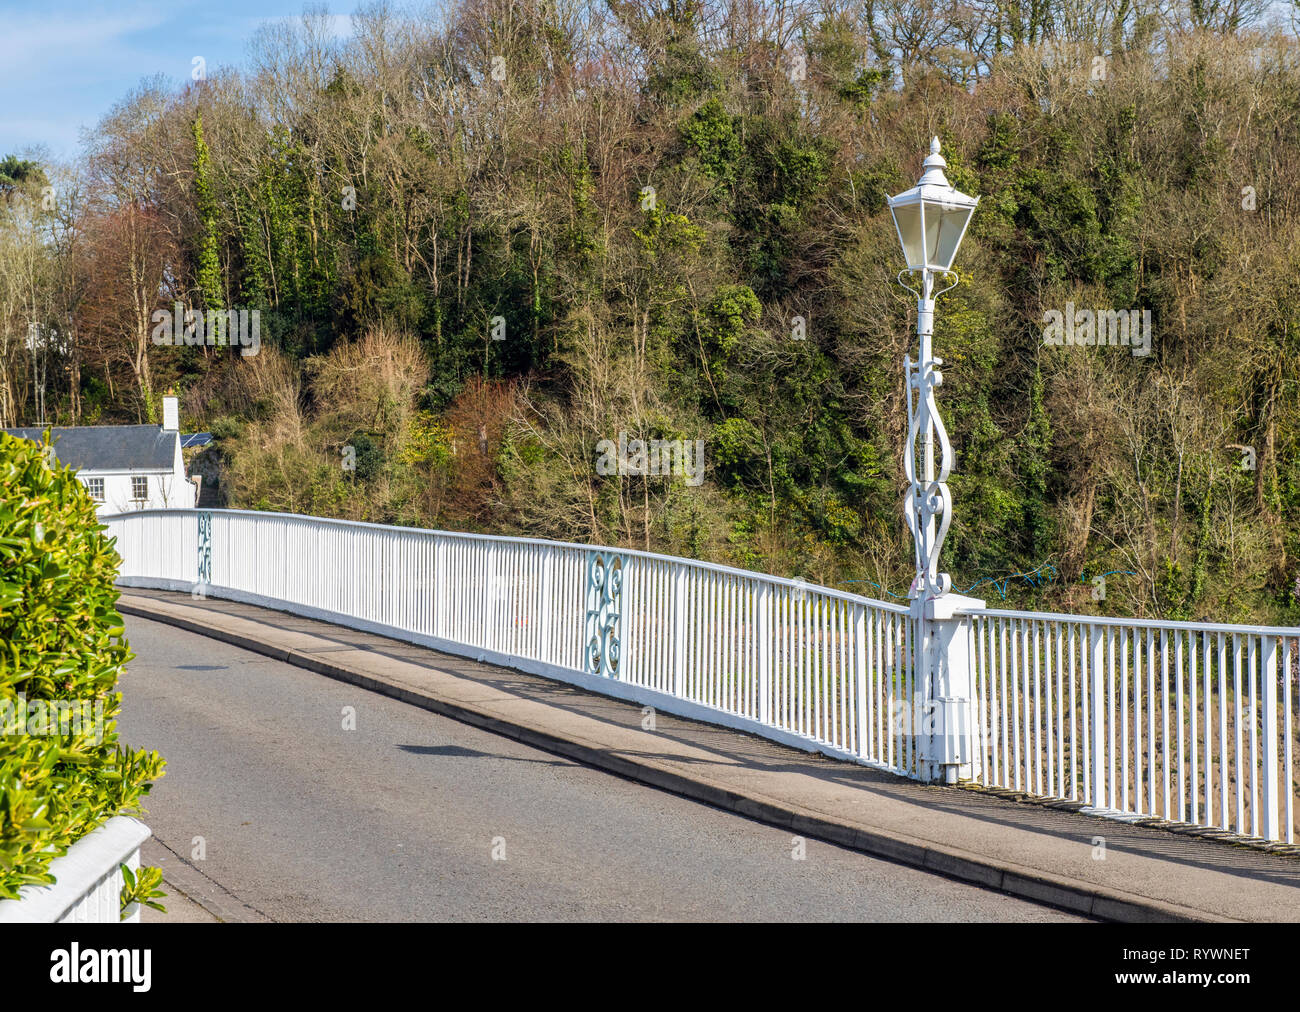 The old Iron Bridge separating Wales from England over the River Wye at Chepstow from the Wales side Stock Photo